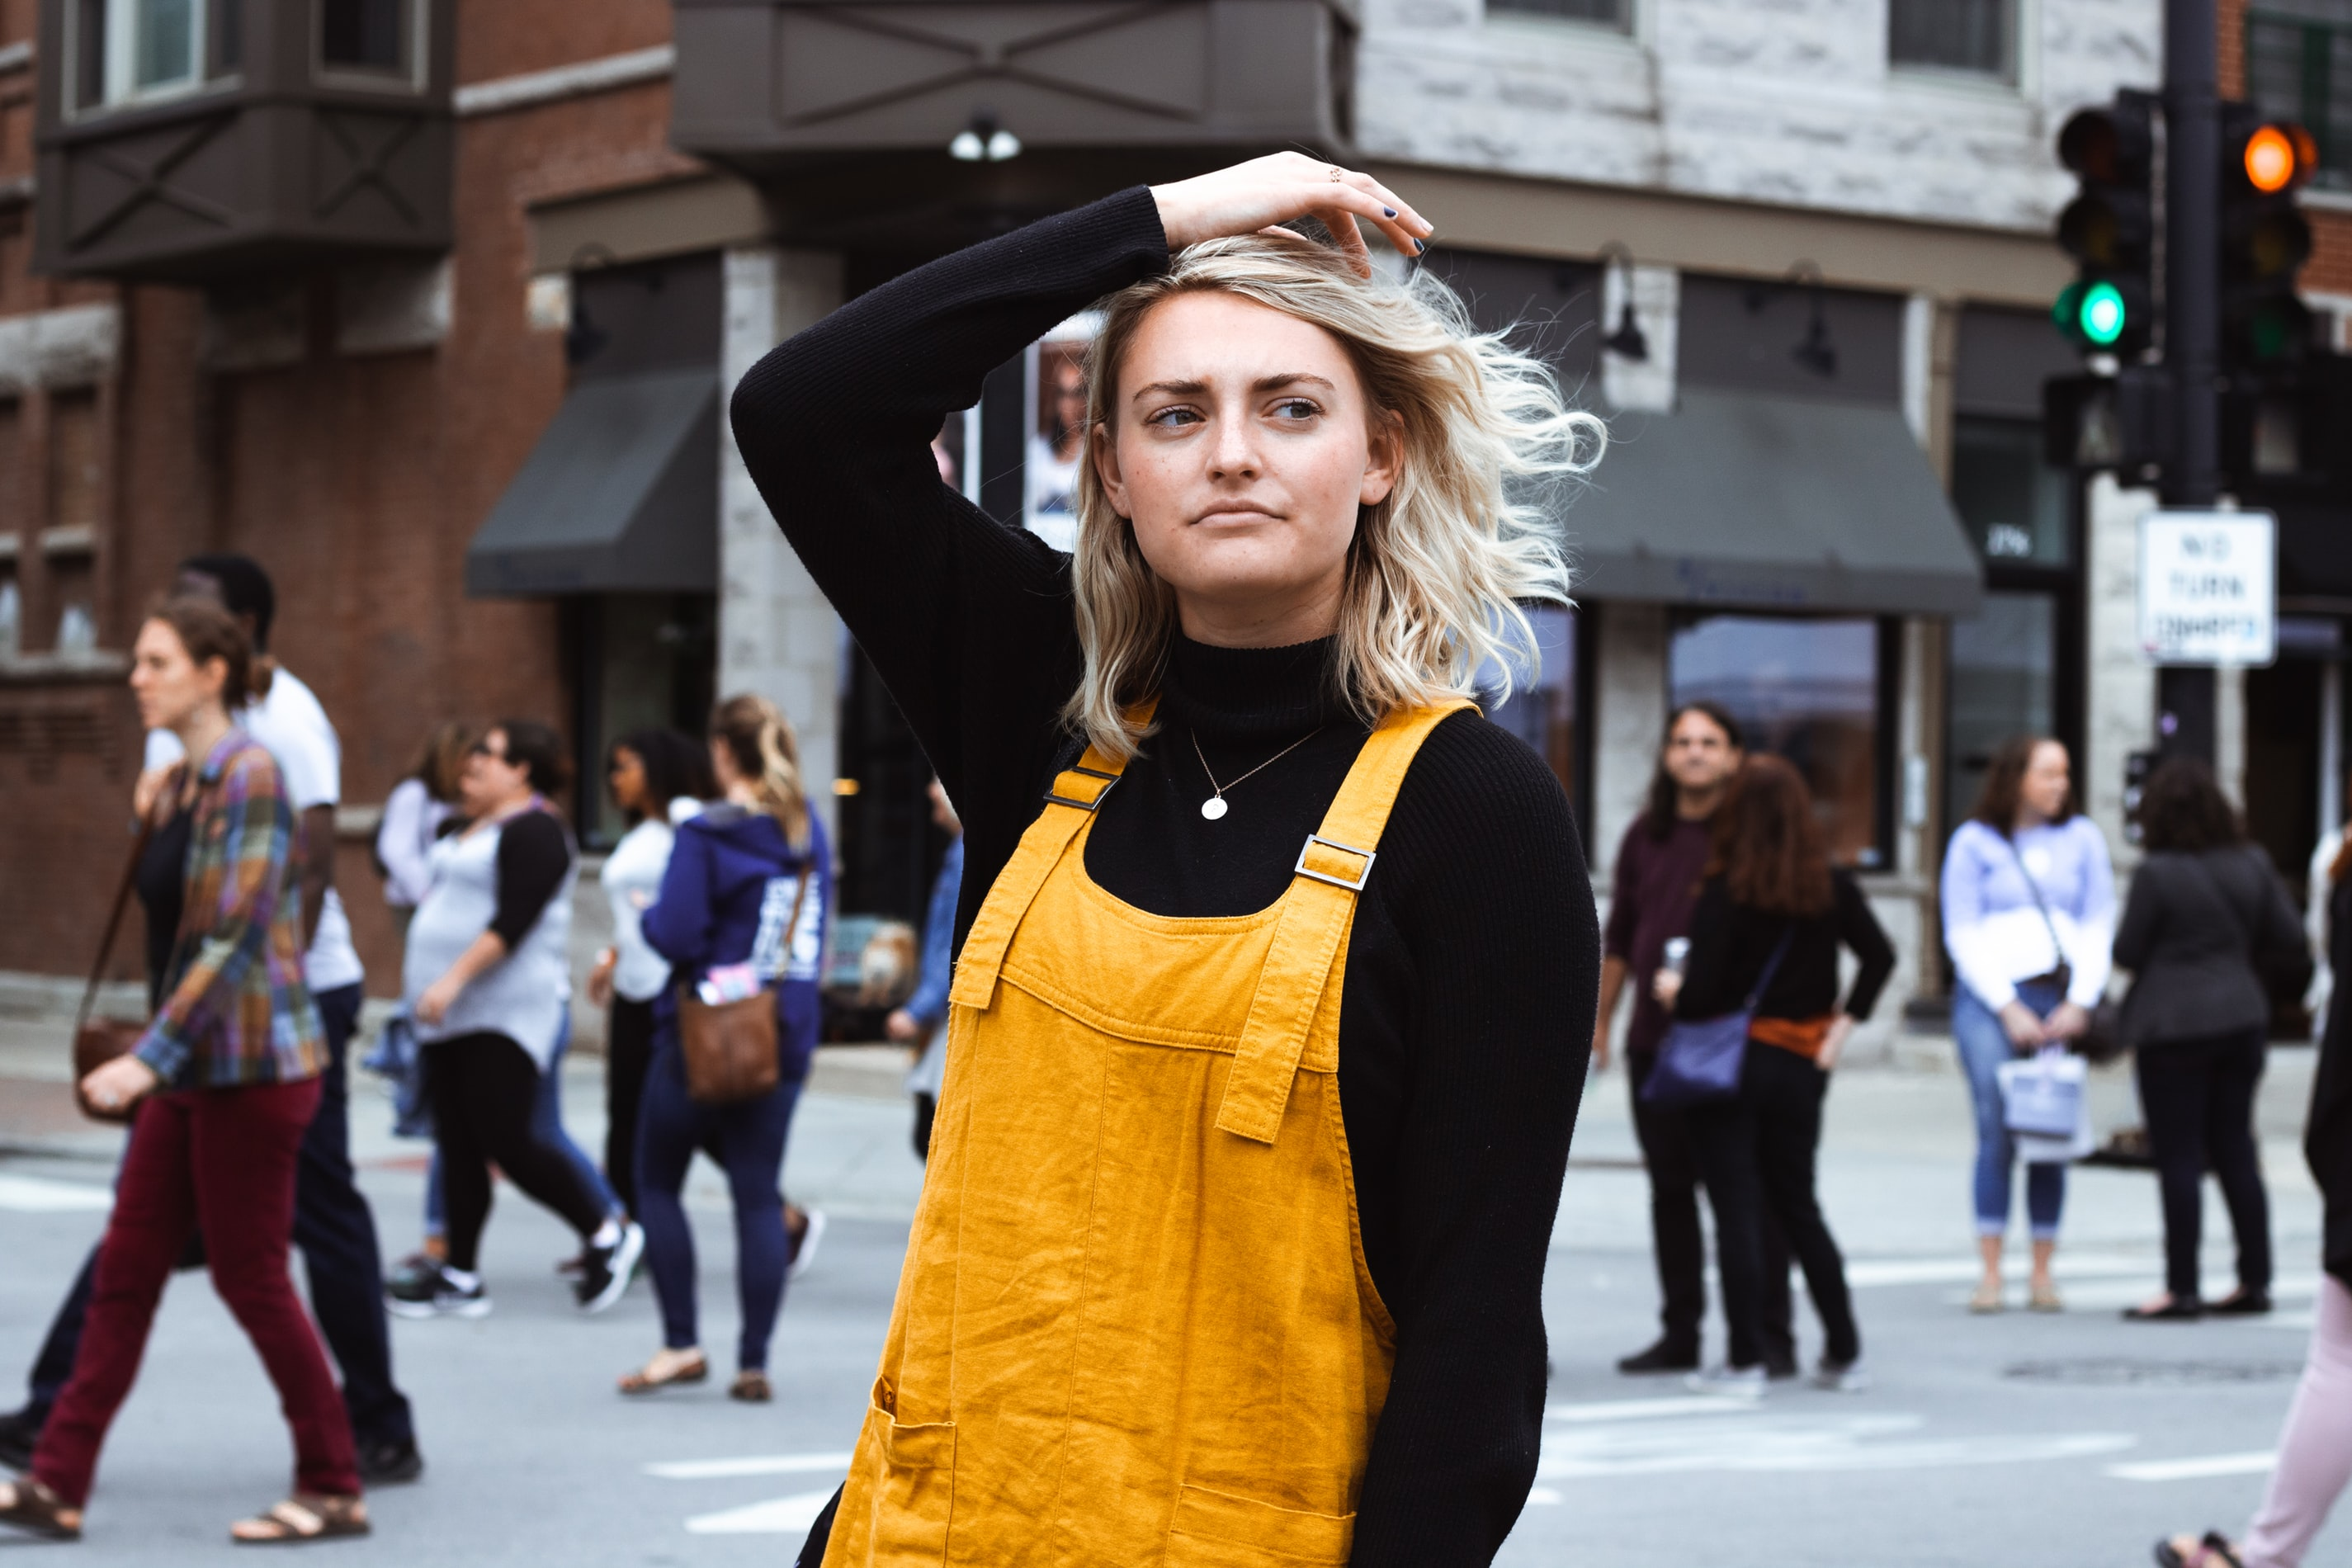 girl in yellow overalls